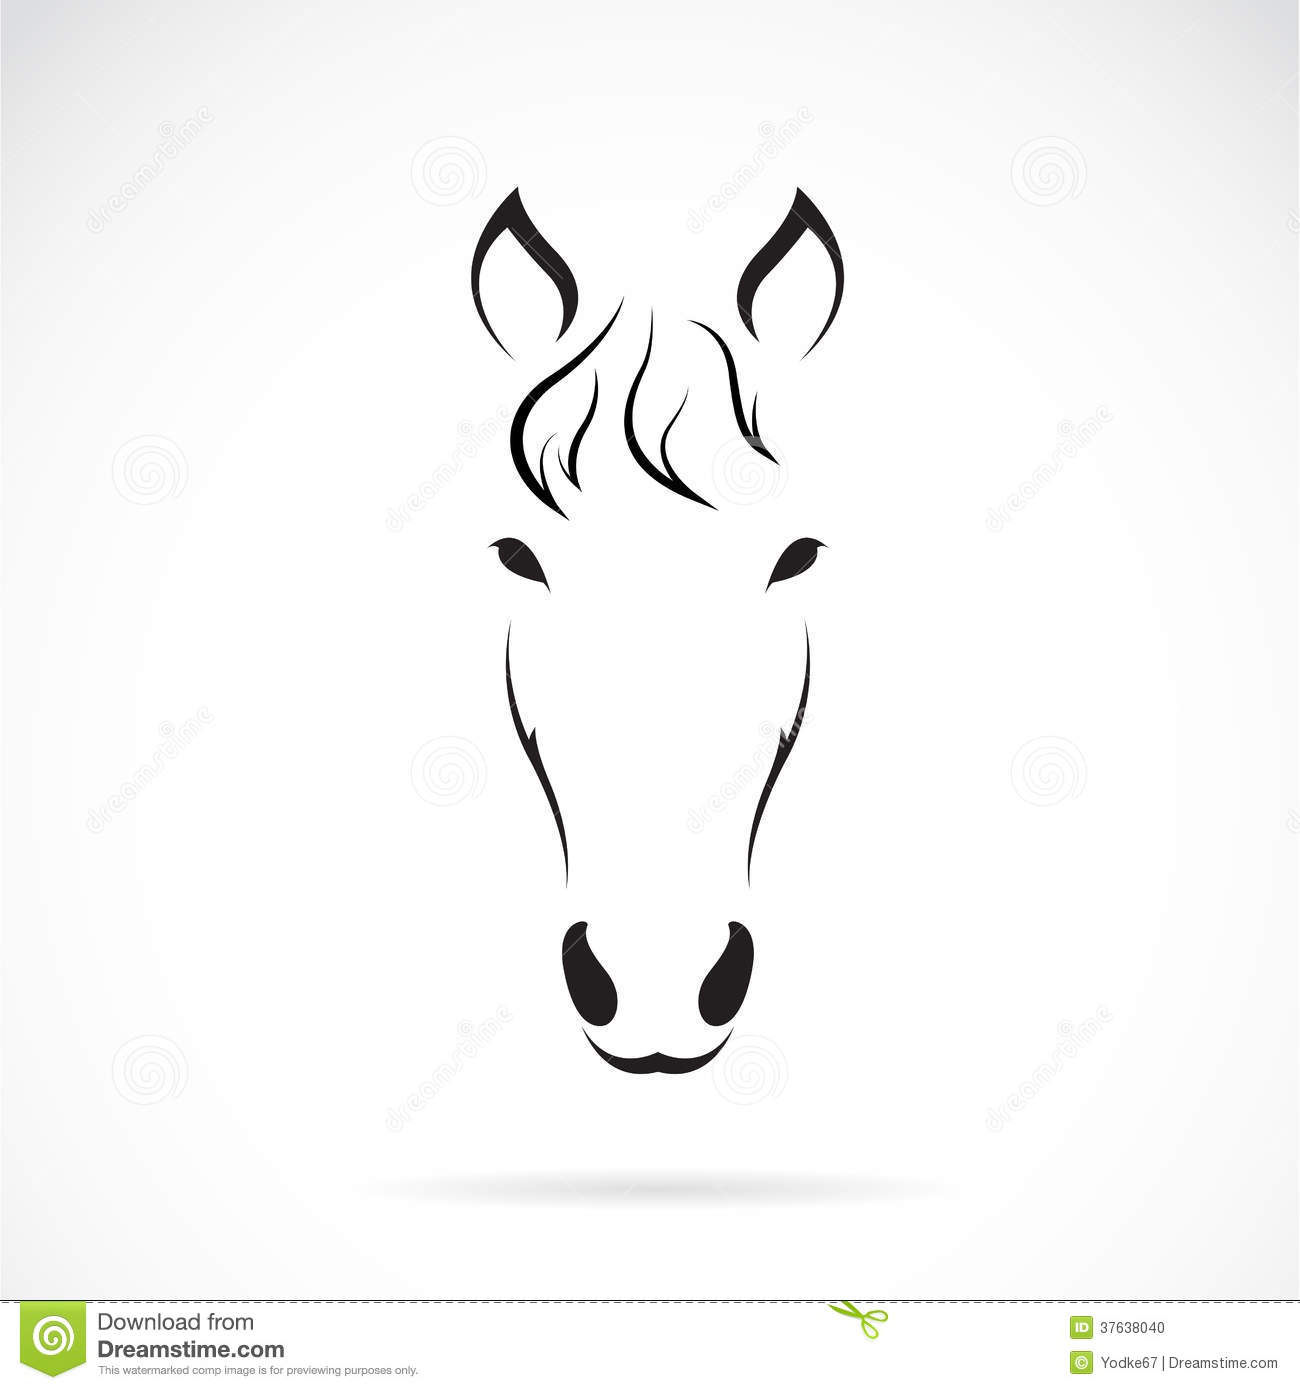 Horse Face Line Drawing : Vector image of an horse face stock illustration